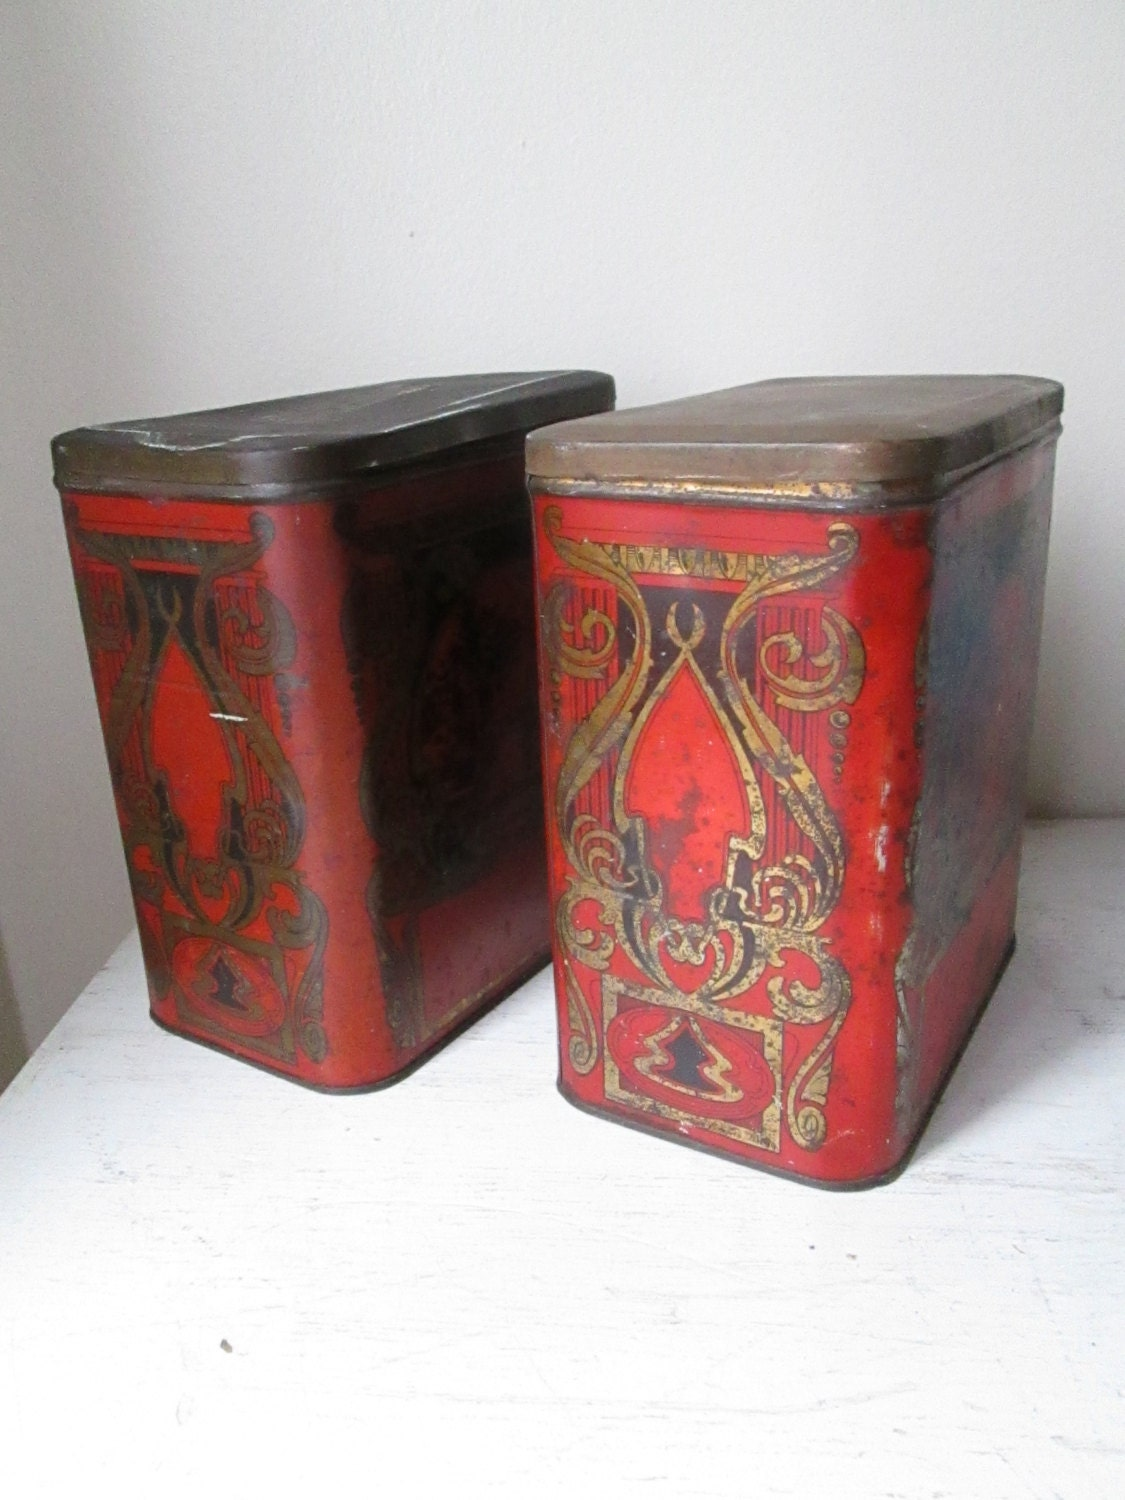 1930s decorative tins